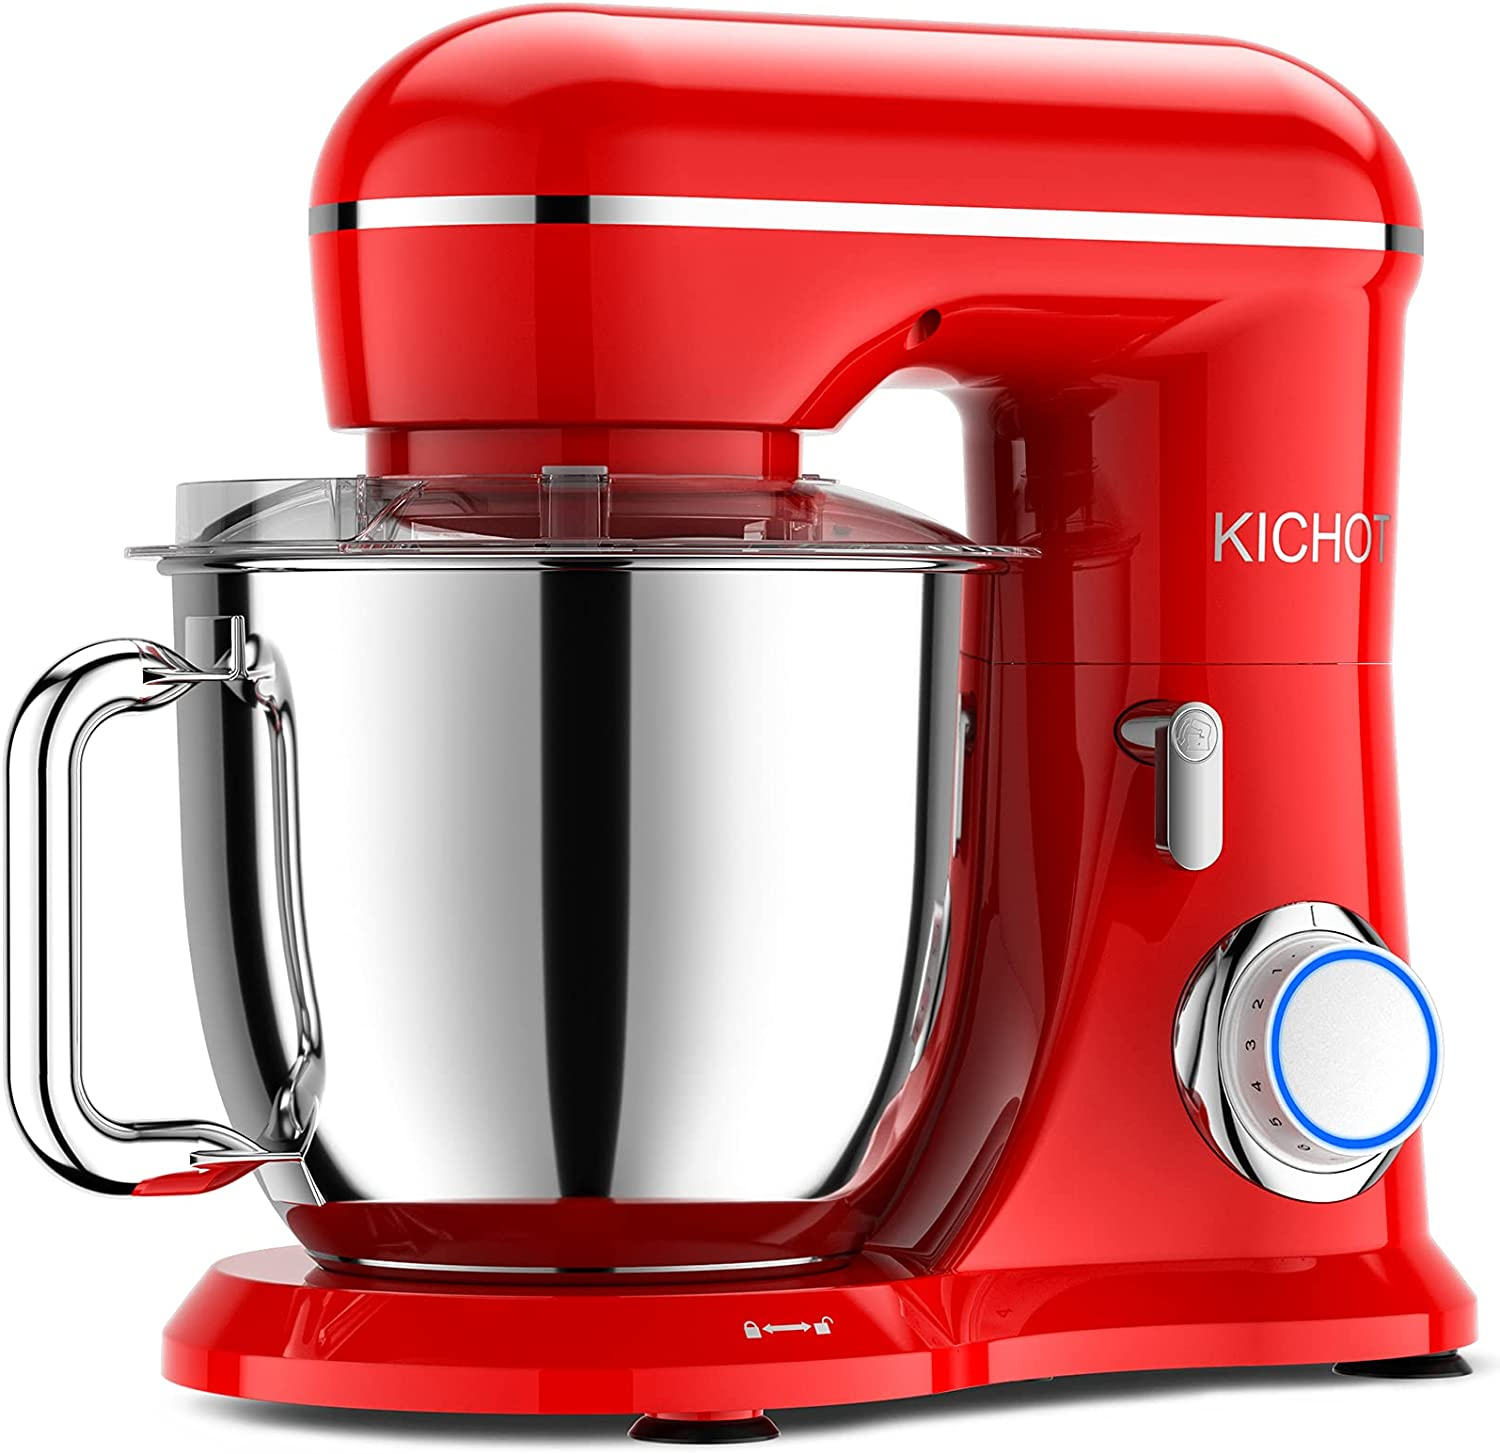 KICHOT Stand Mixer, 10-Speed Tilt Head Electric Food Mixer, 4.8QT Kitchen Mixer with Dough Hook, Flat Beater, Wire Whisk and Splash Guard (Red)